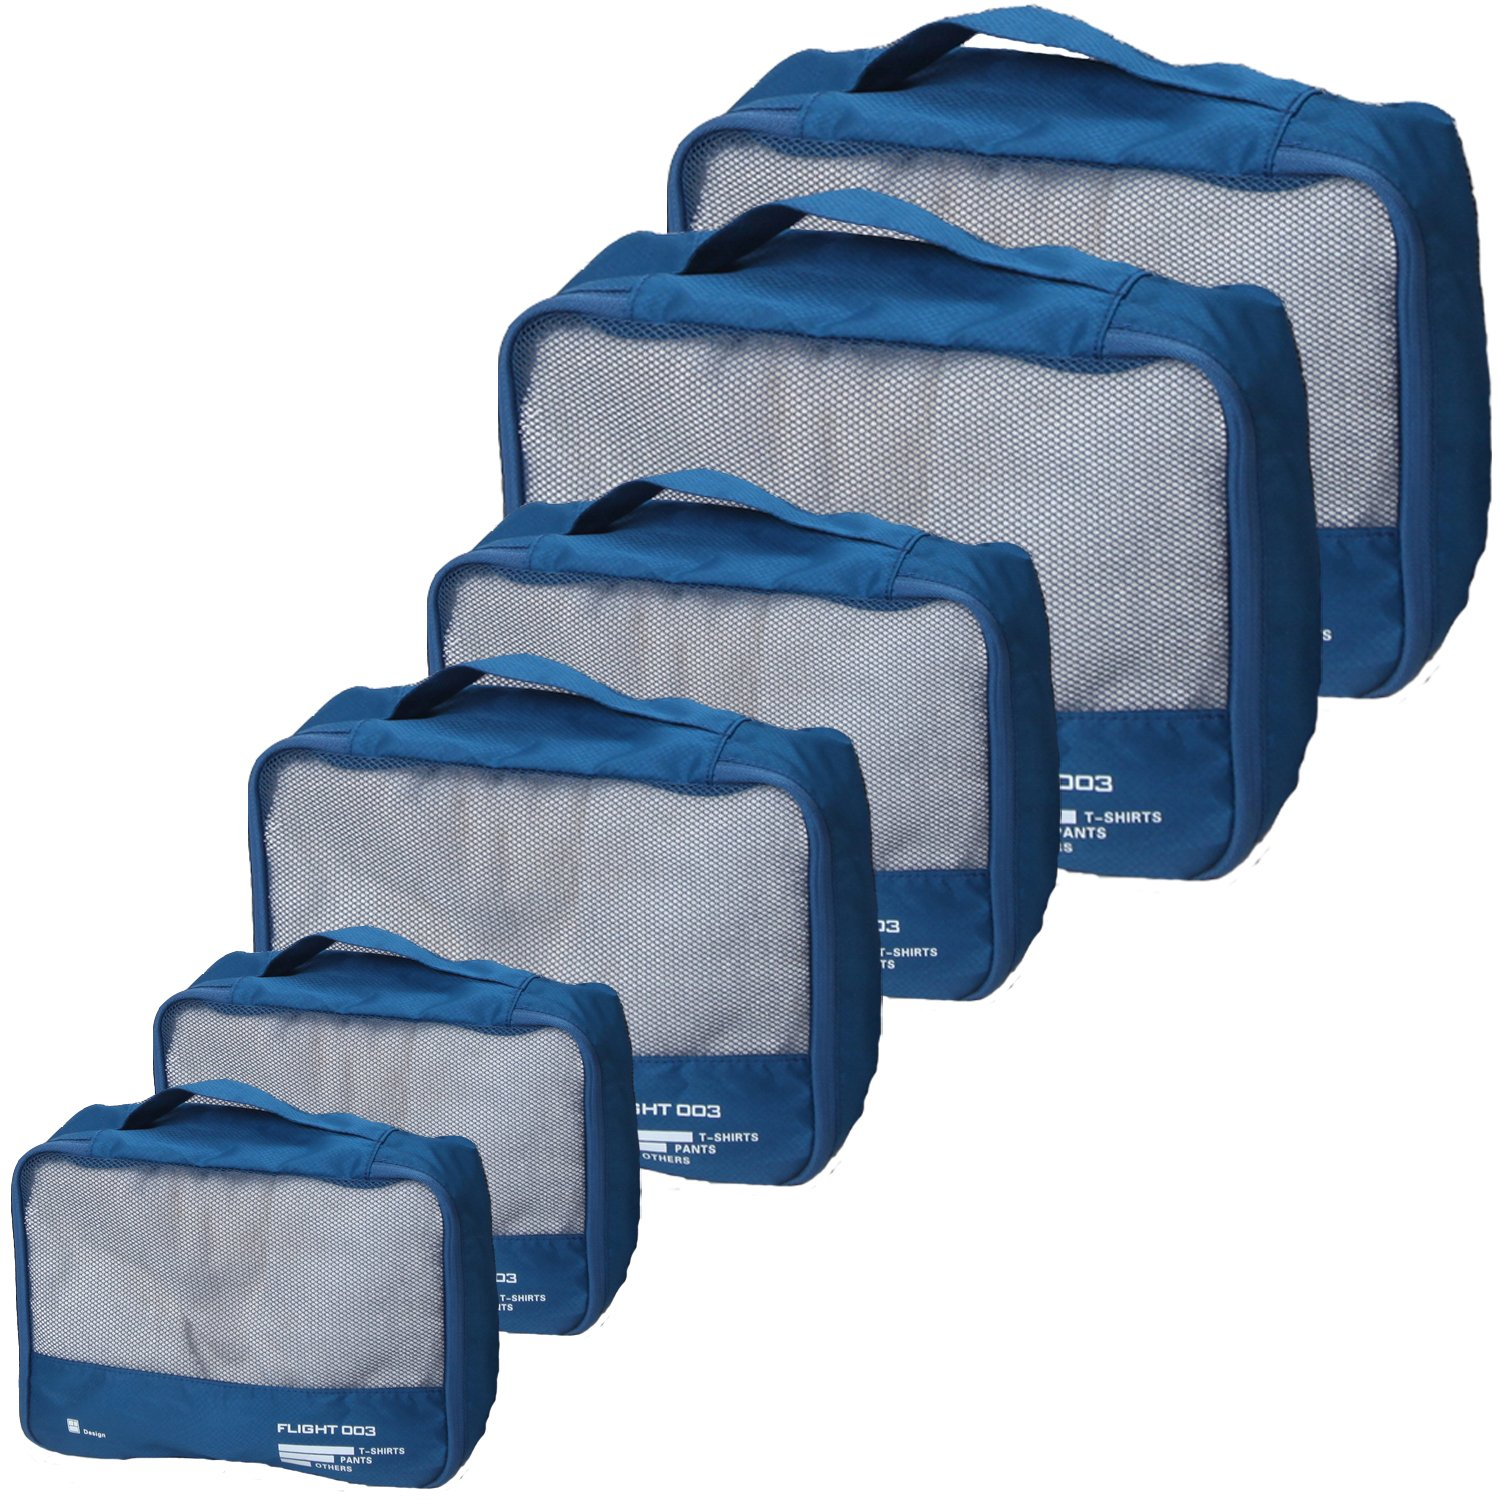 Best Packing Cubes Set Travel Luggage Organizers Suitcase Lightweight Accessories by vallilan